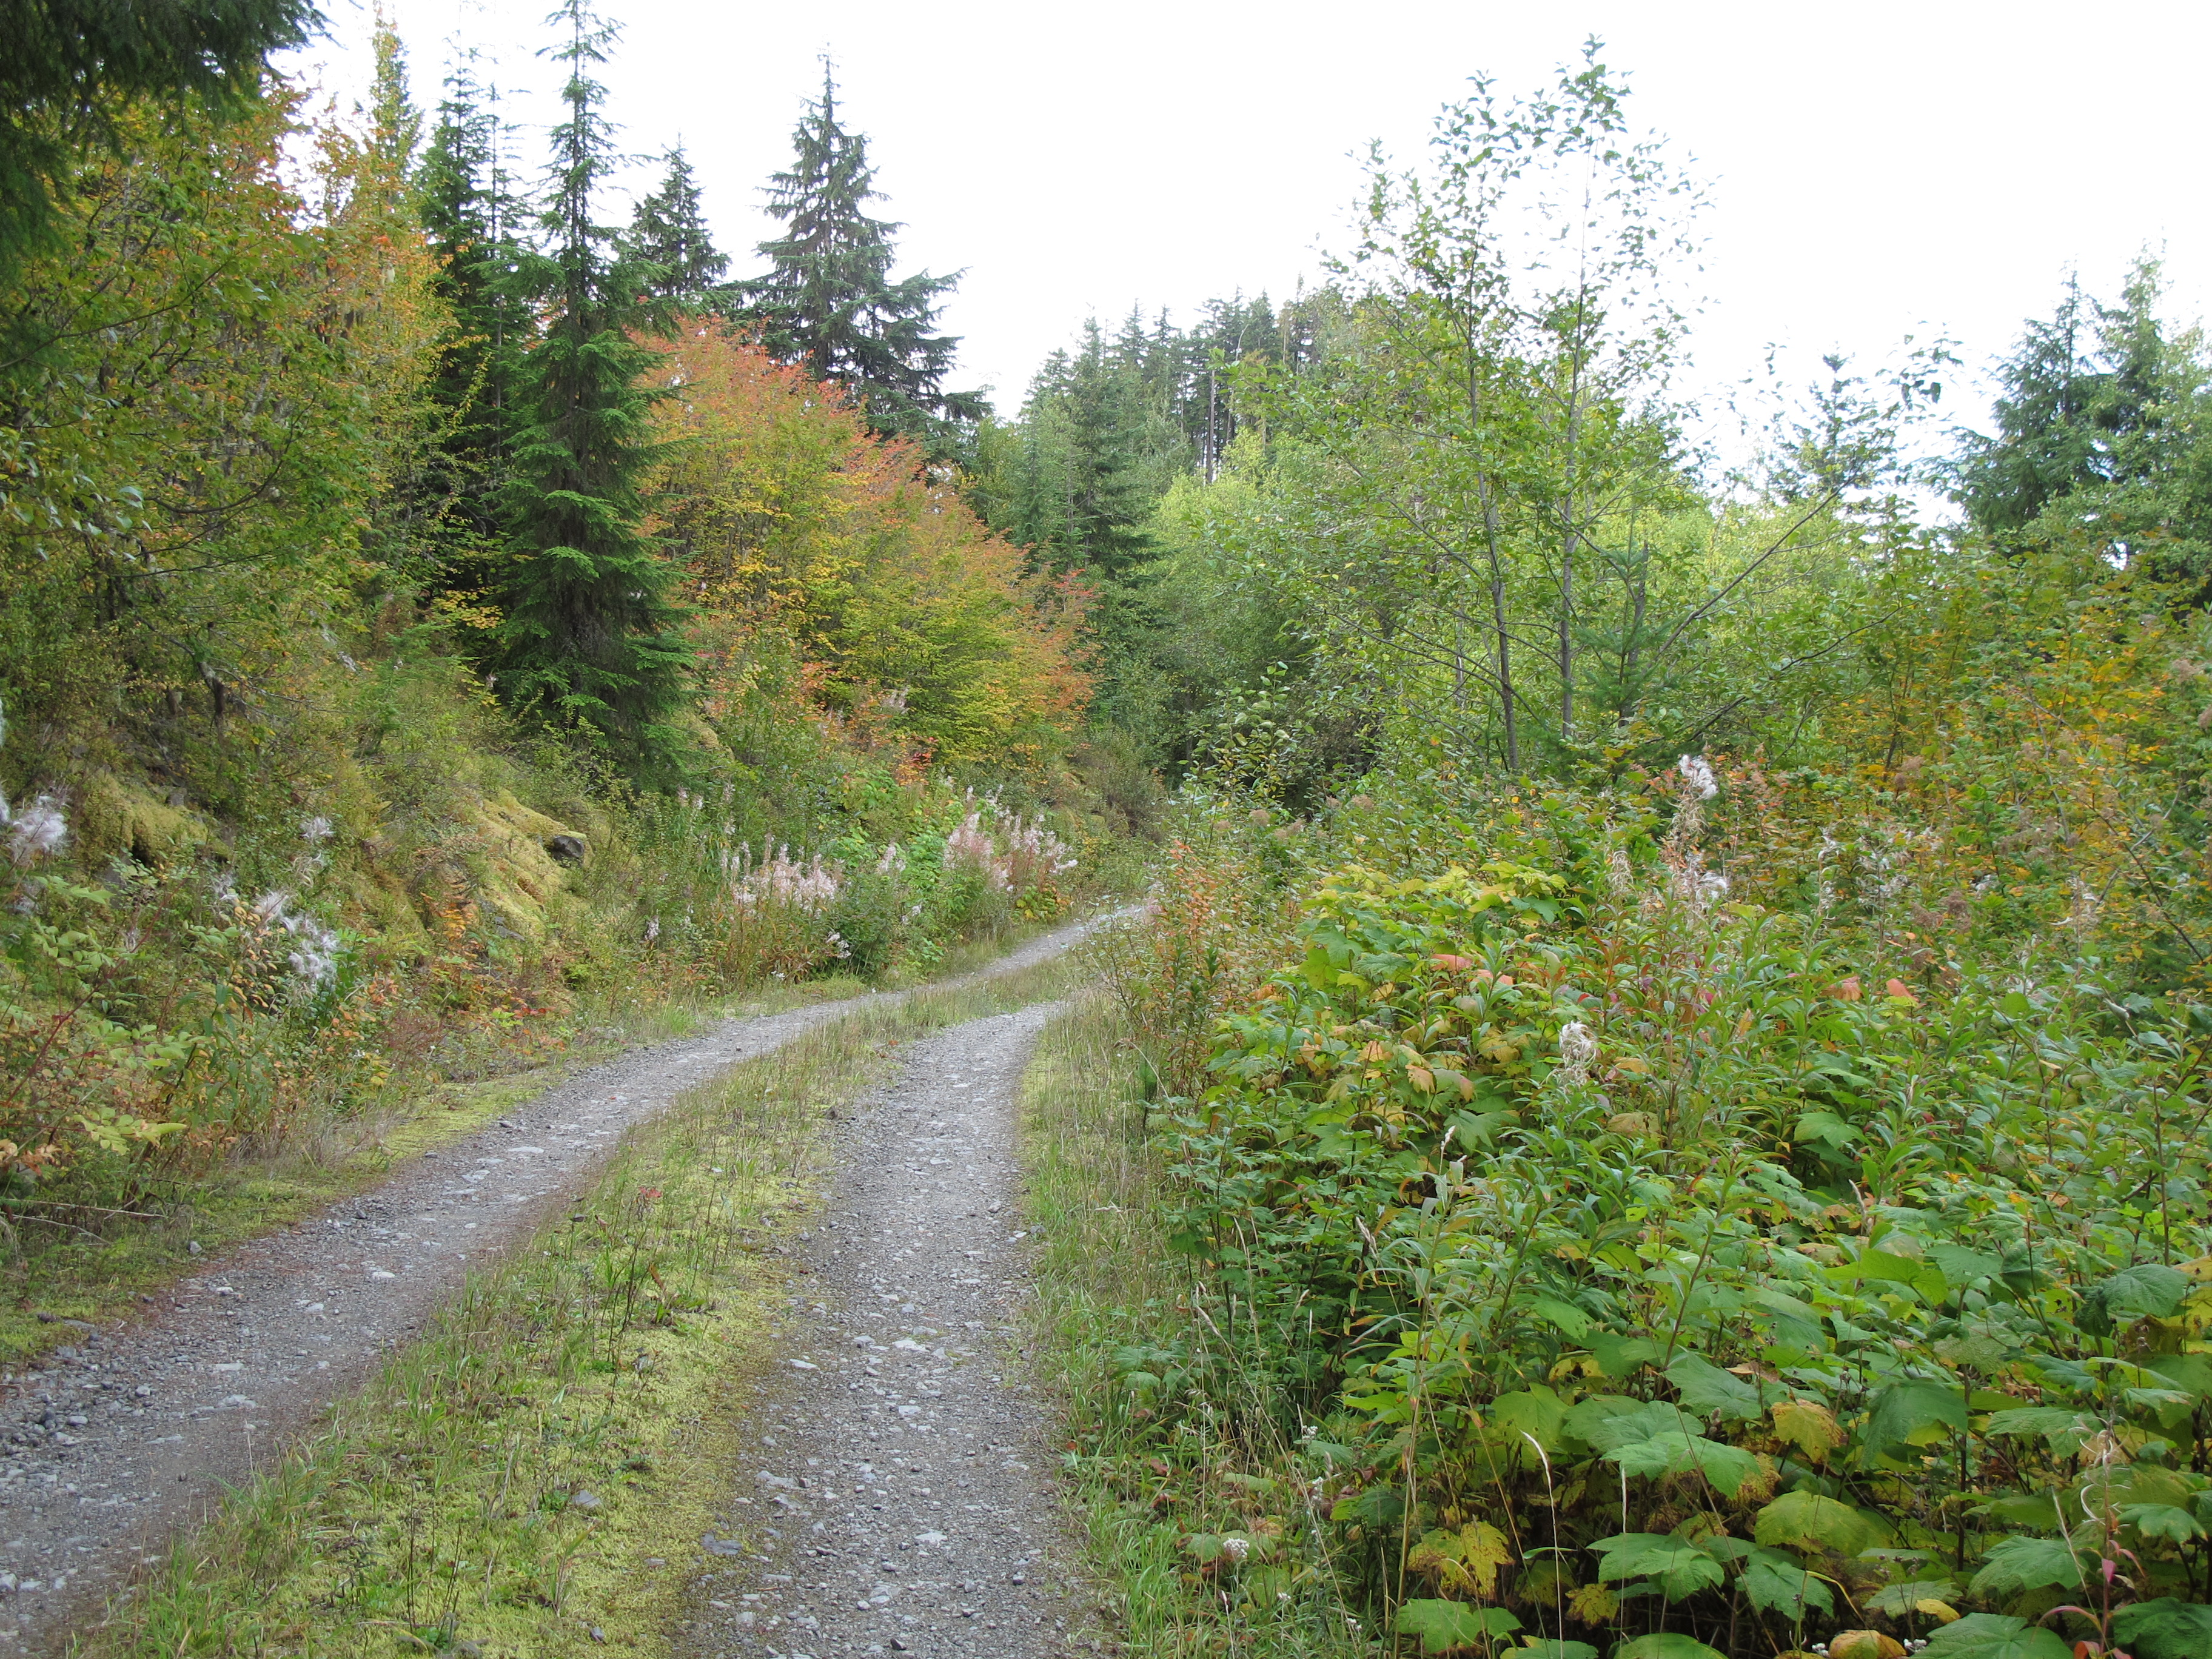 Logging road with diverse growth along the edges.